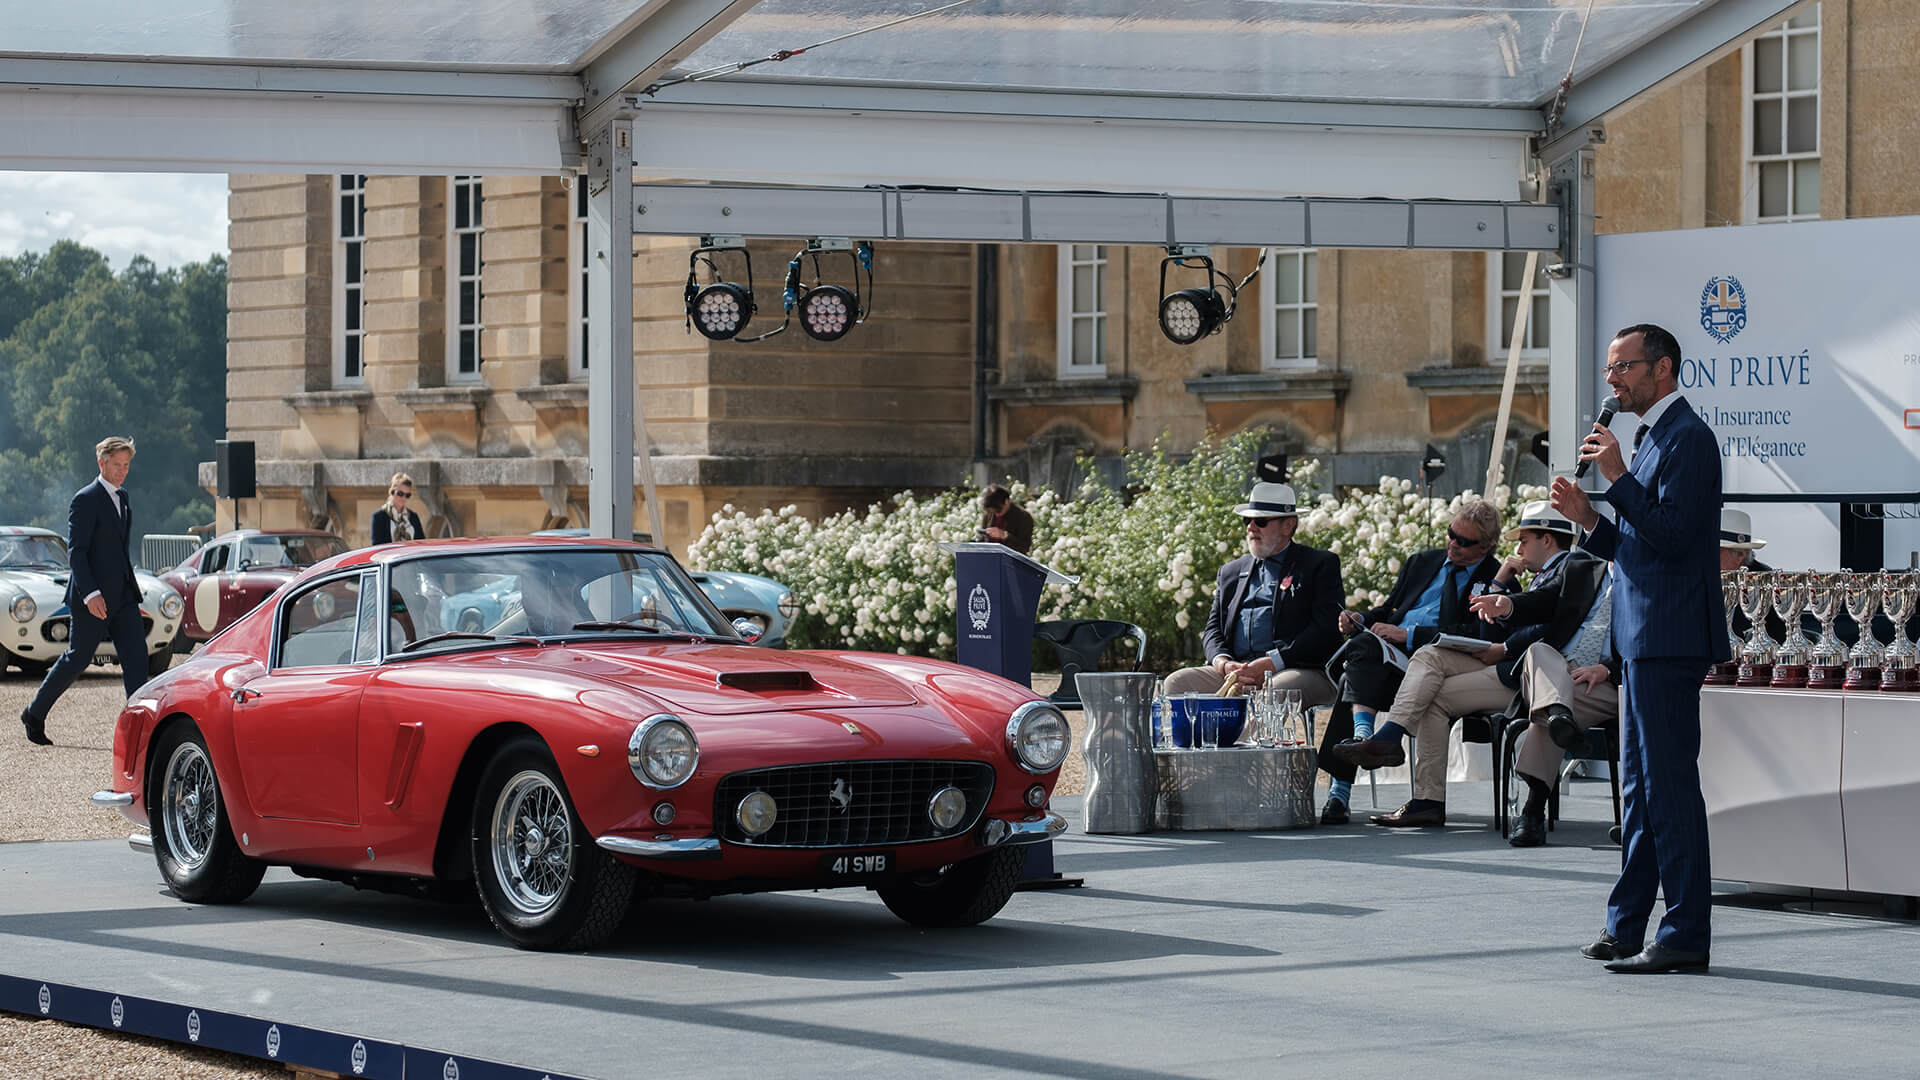 Salon Privé 2019: Bigger and better than ever